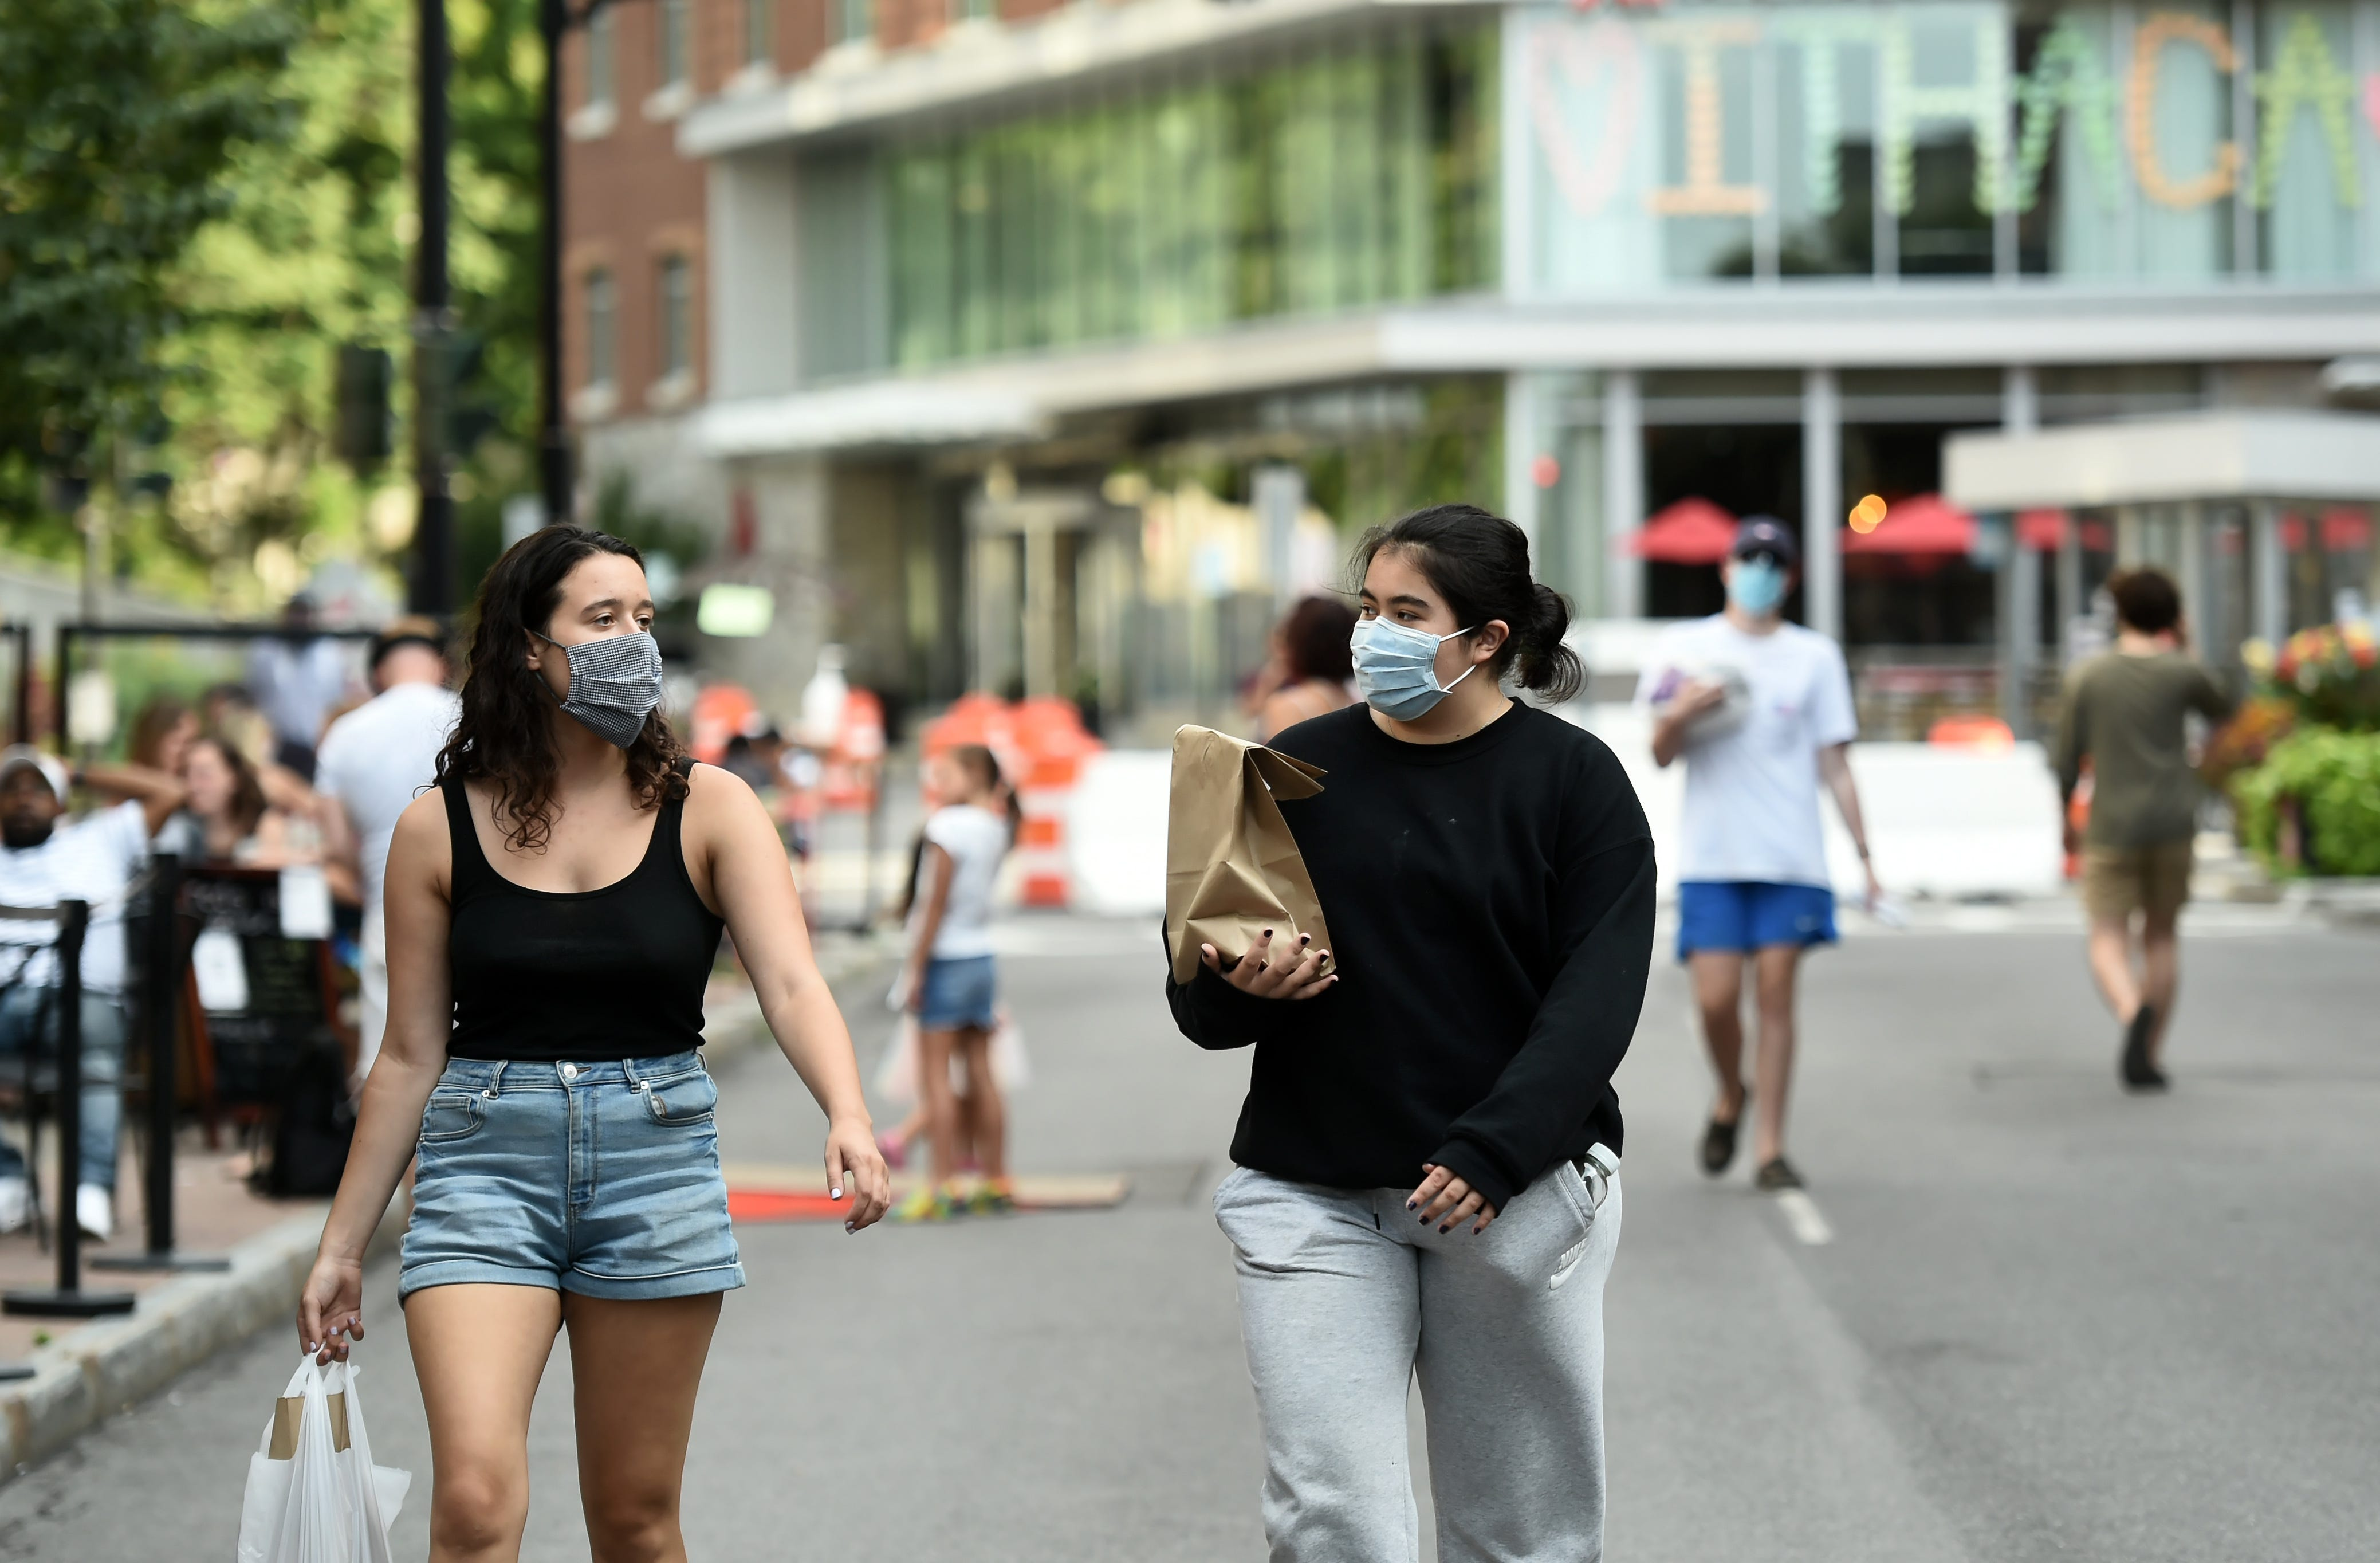 College towns across New York welcomed students back for the start of the 2020 fall semester with mixed feelings. Local businesses like those in Ithaca's downtown saw long-awaited relief with the customer increase, but some residents worried students would spread the virus in their towns.